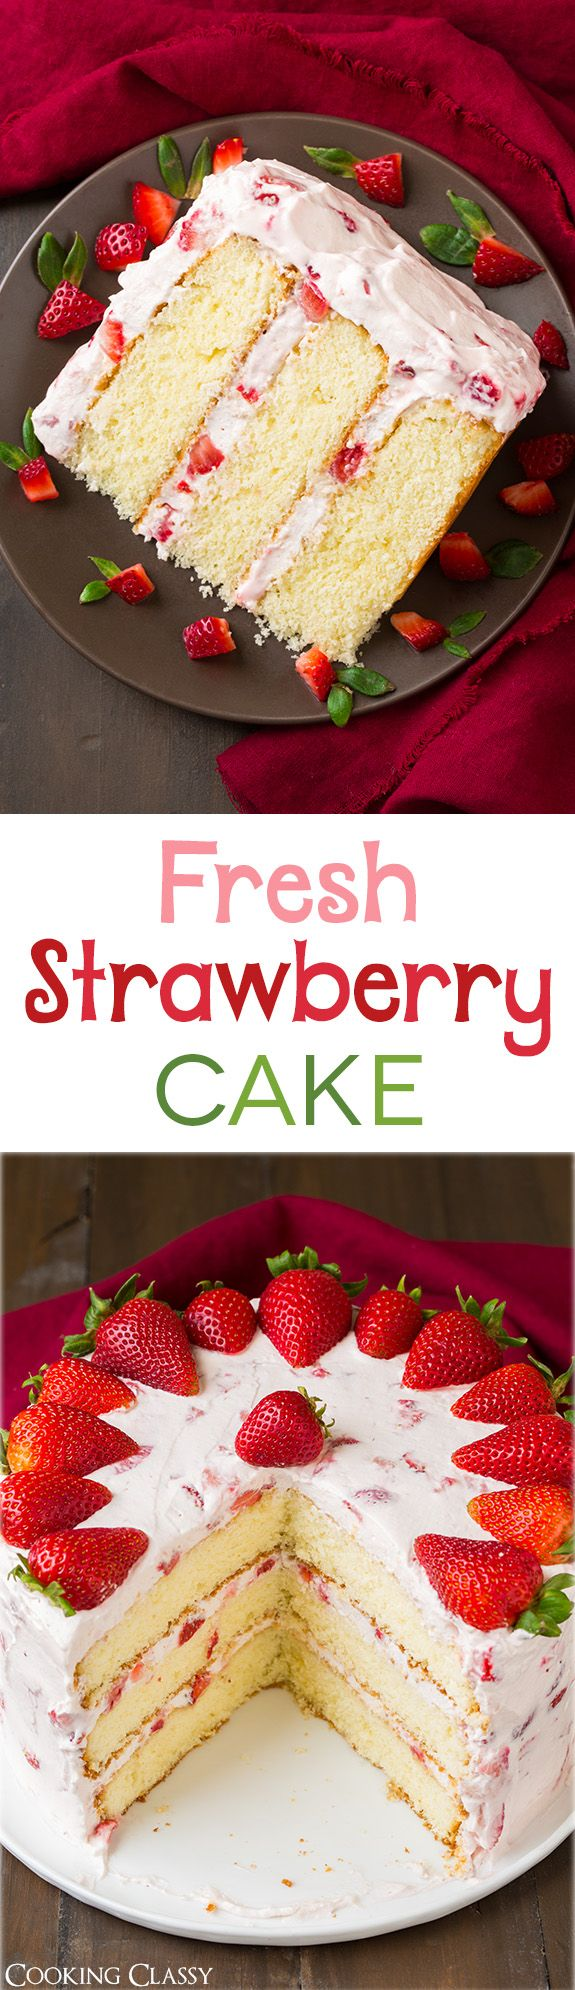 Fresh Strawberry Cake - this cake is DIVINE!! Just made it again for Mother's Day my mom ate two pieces and asked if she could take the rest home! The cream cheese in the whipped cream topping makes all the difference.